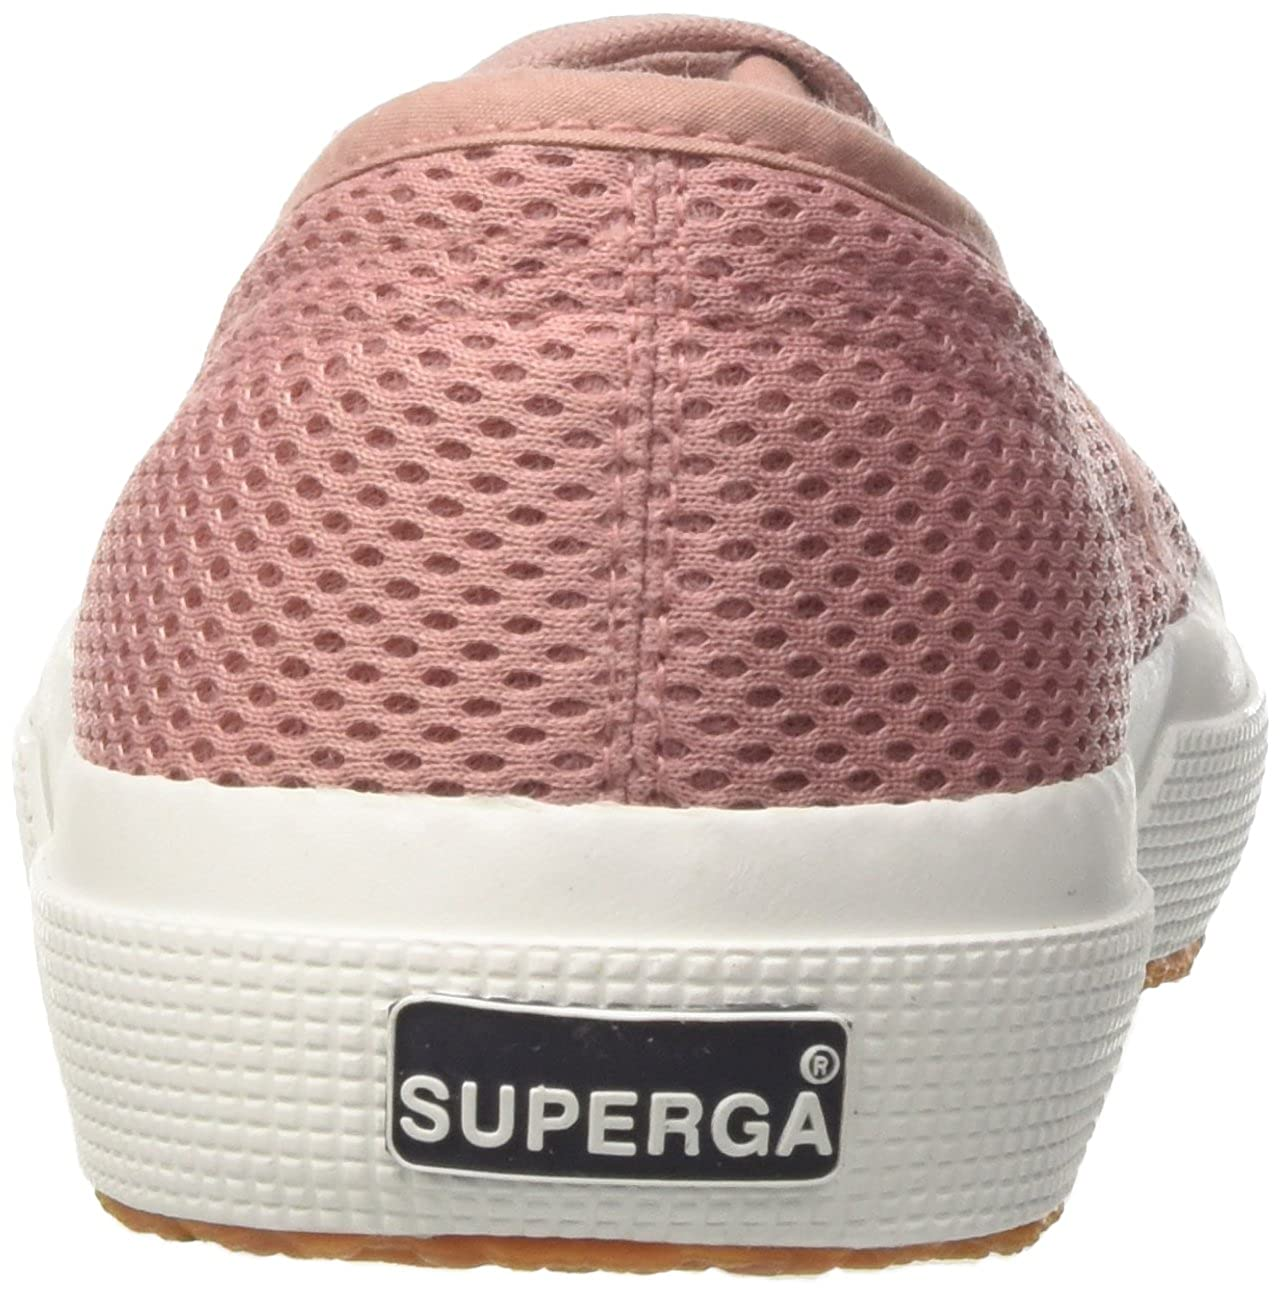 Superga Unisex Adults 2750-Meshu Trainers